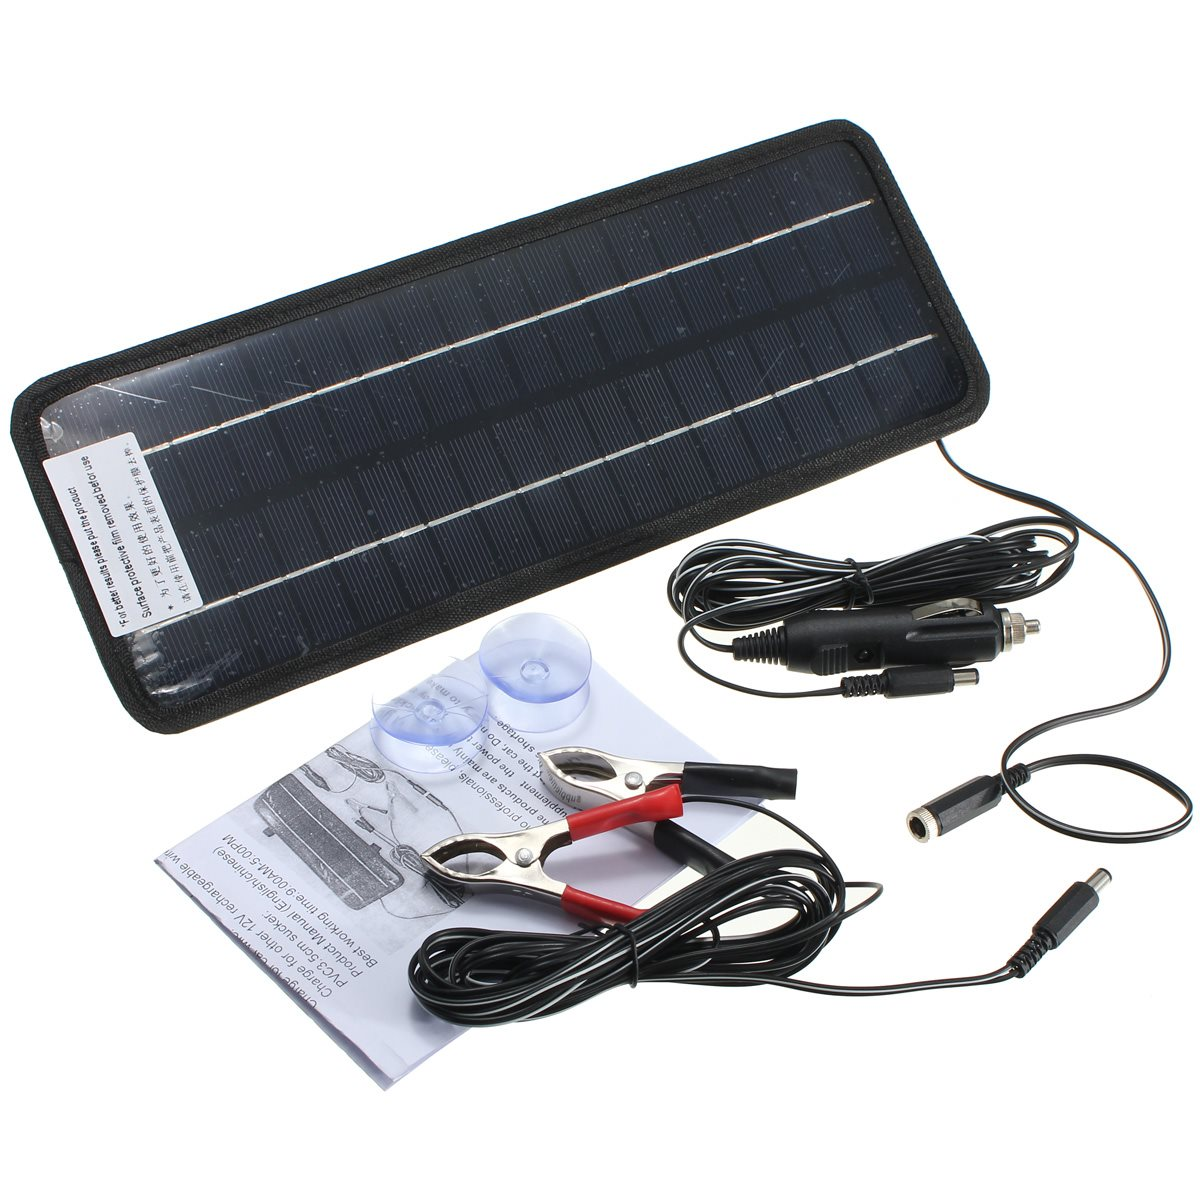 Hot Sale 12v 4 5w Portable Monocrystalline Solar Panel Module System Car Automobile Boat Rechargeable Power